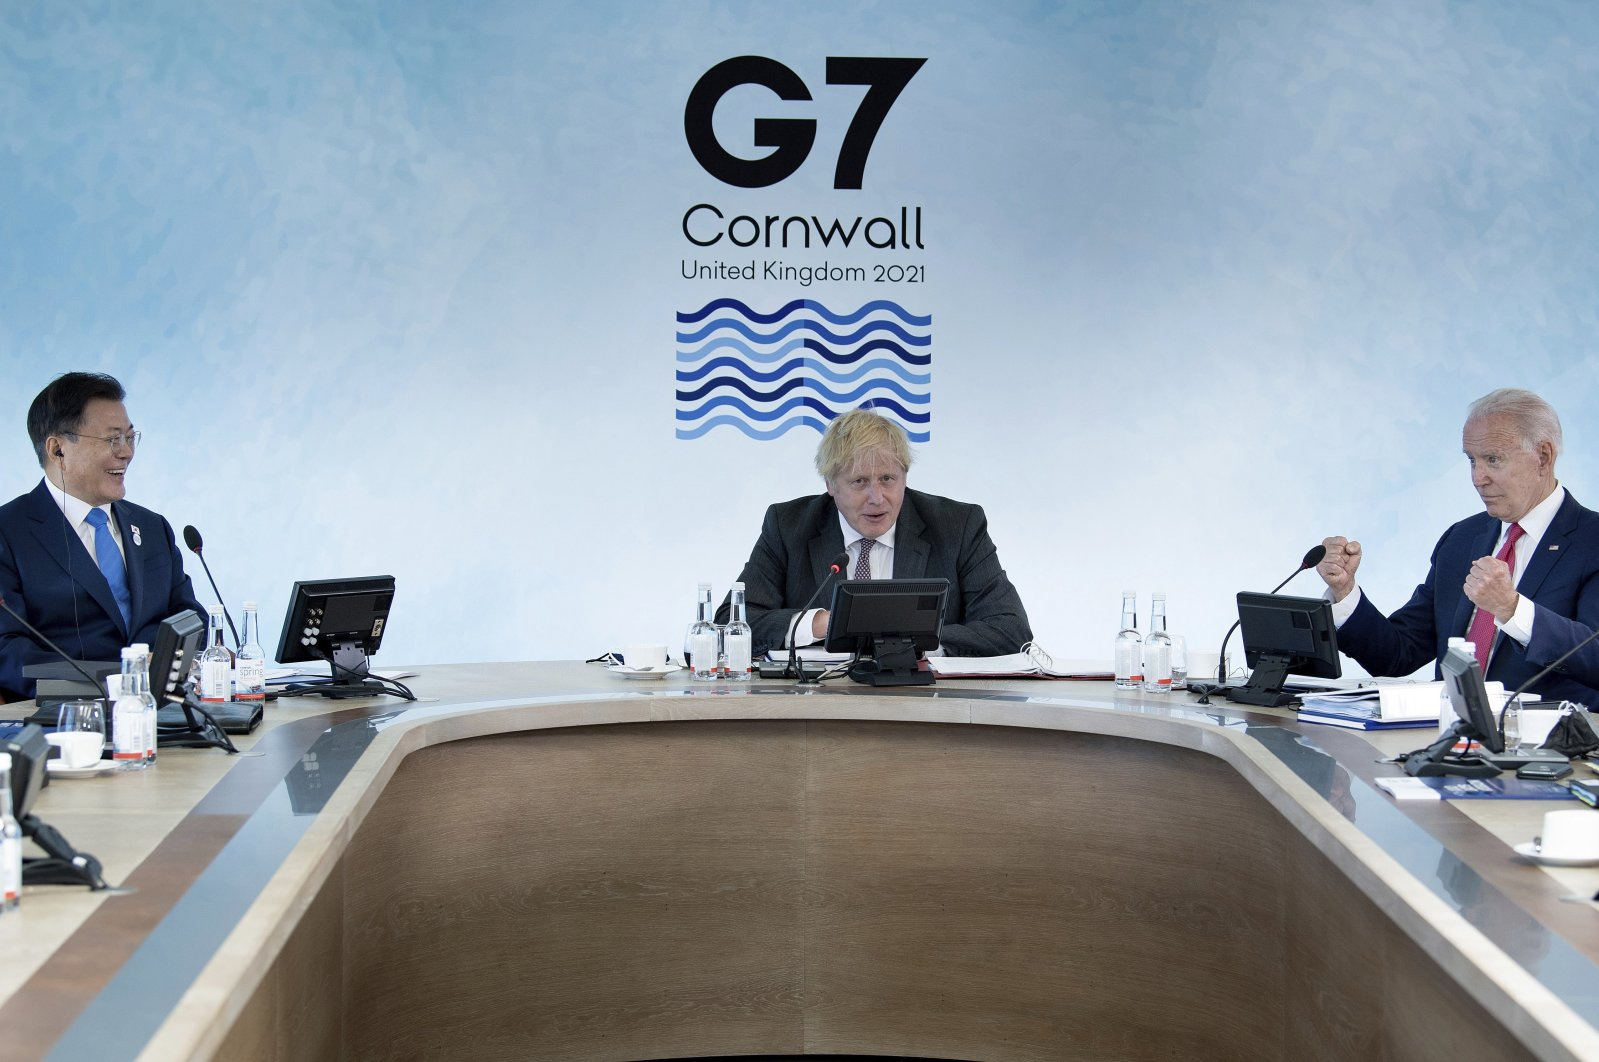 South Korea's President Moon Jae-in (L), Britain's Prime Minister Boris Johnson (C) and U.S. President Joe Biden work during a session at the G-7 summit in Carbis Bay, Cornwall, England, June 12, 2021. (AP Photo)